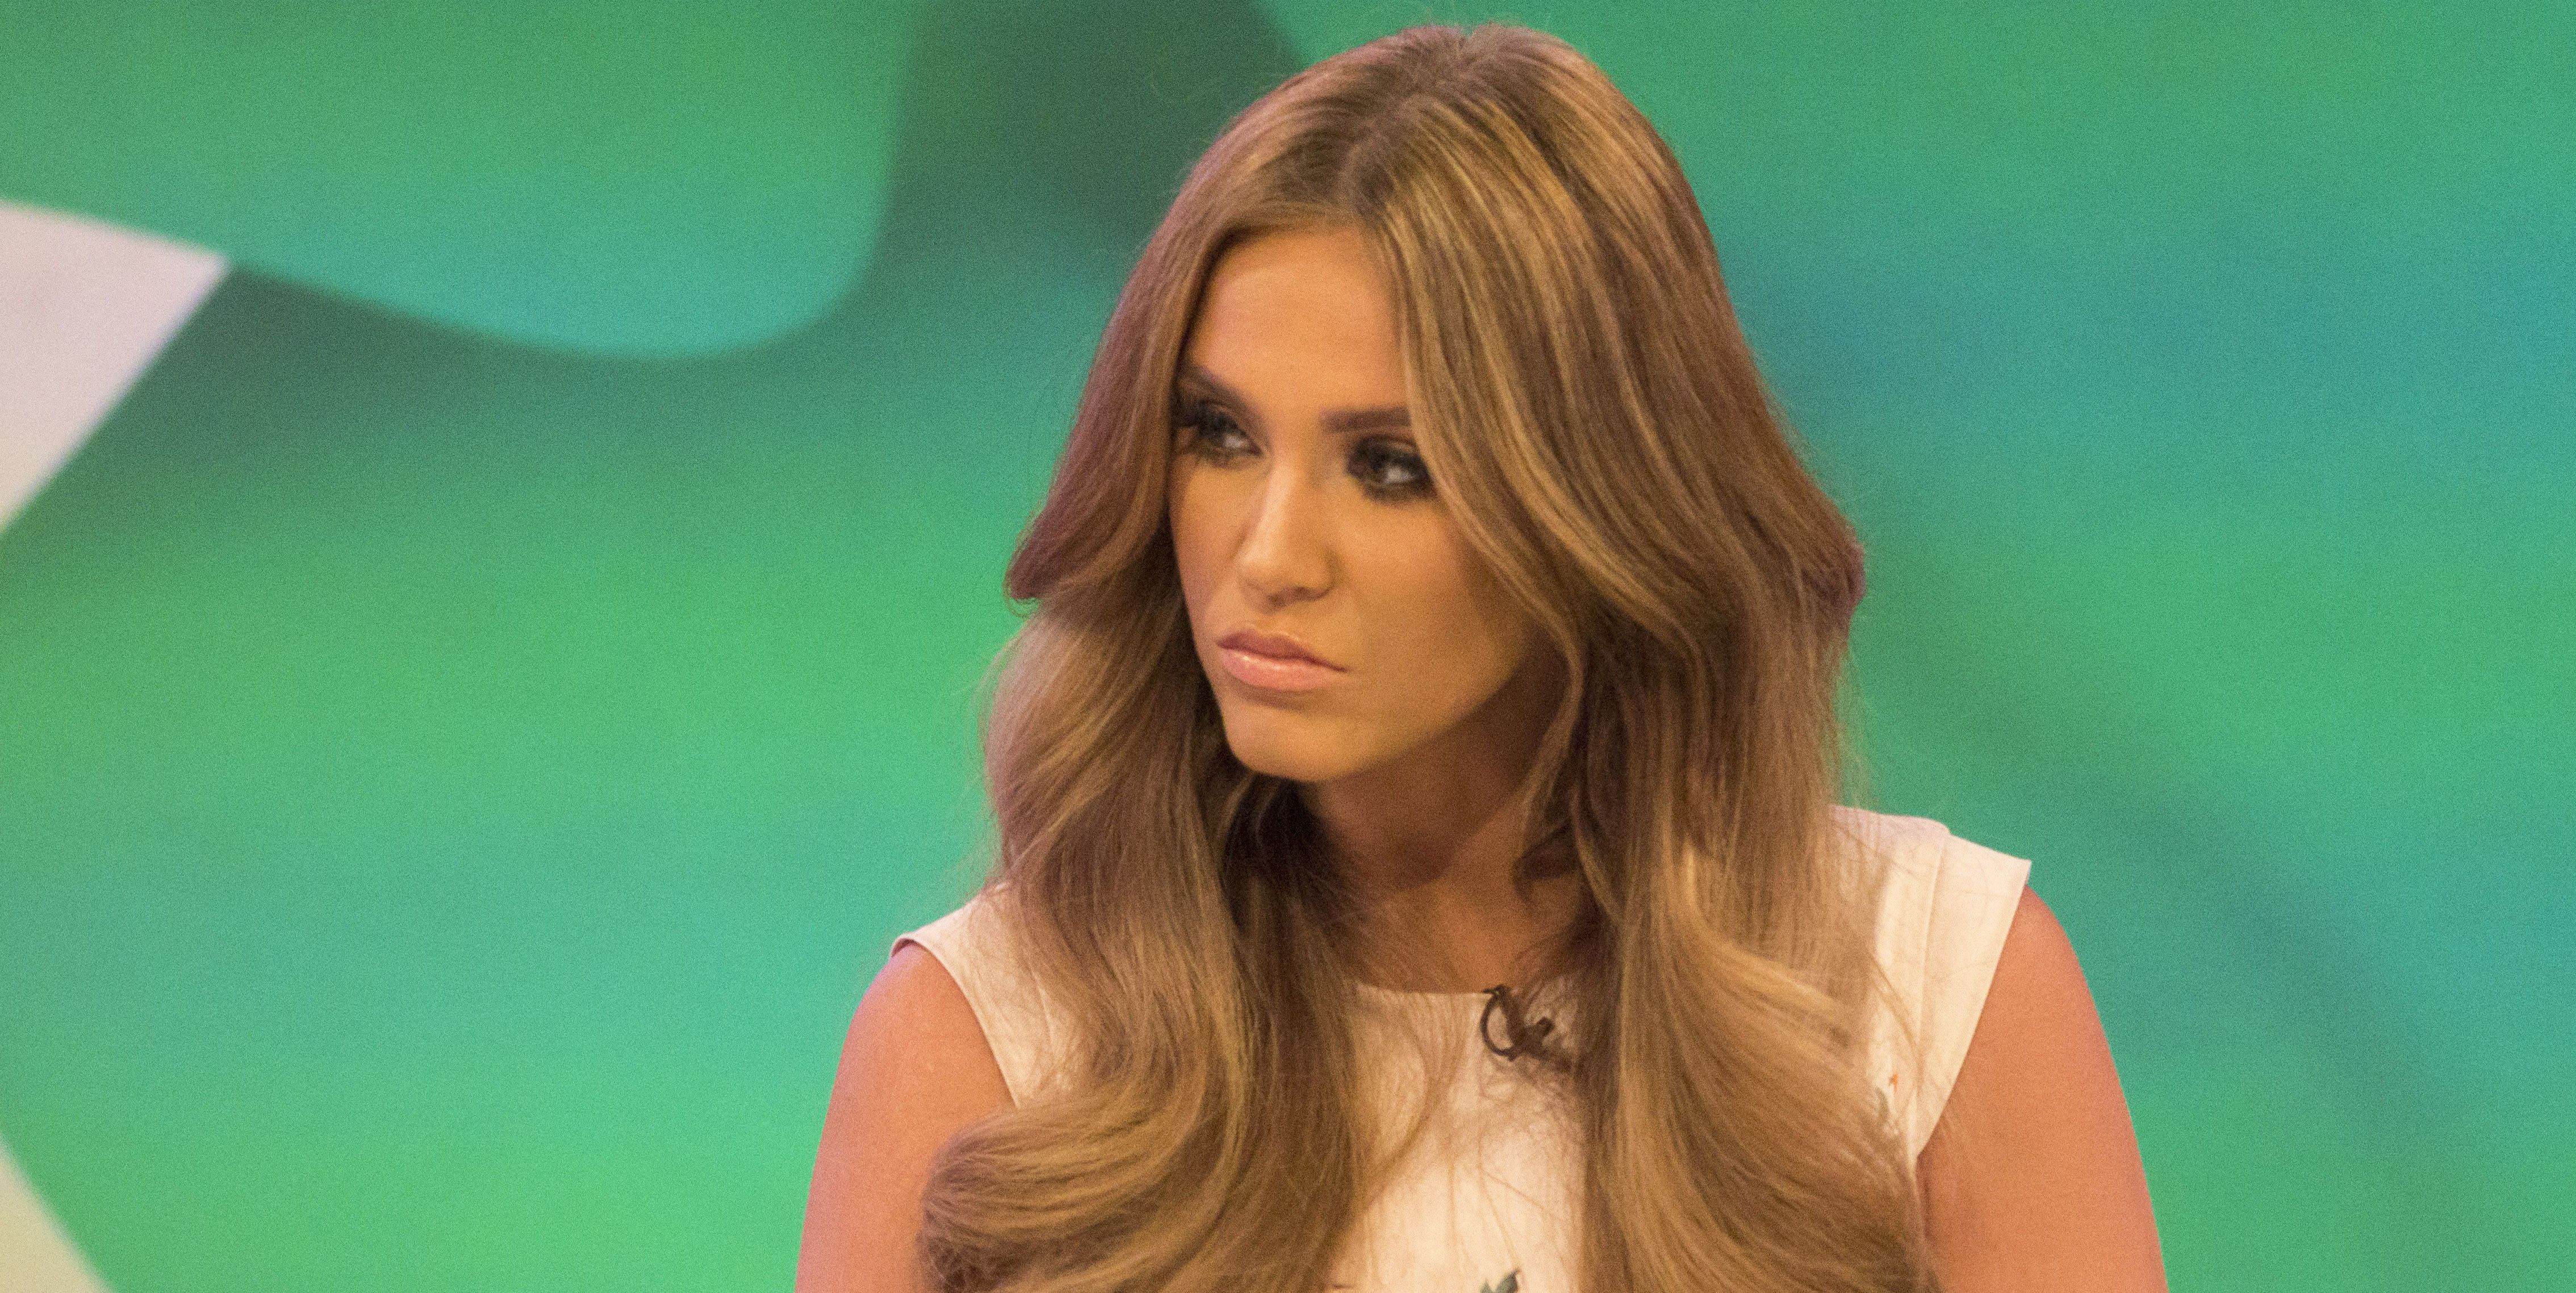 Vicky Pattison, looking annoyed, Loose Women